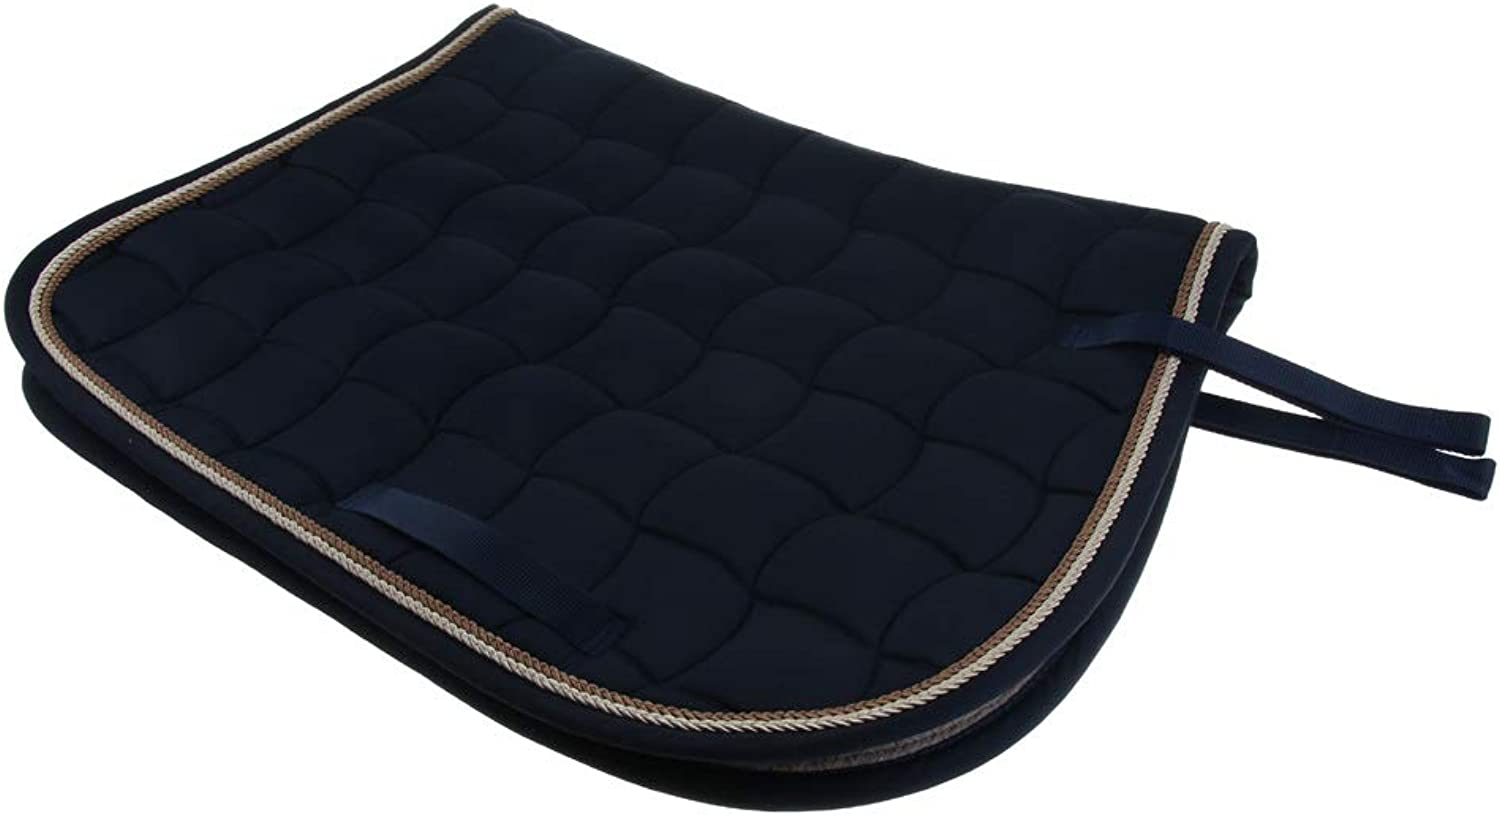 CUTICATE Half Western English Saddle Pads, Horse Jumping Event Saddle Pad for Schooling Training, Eventing